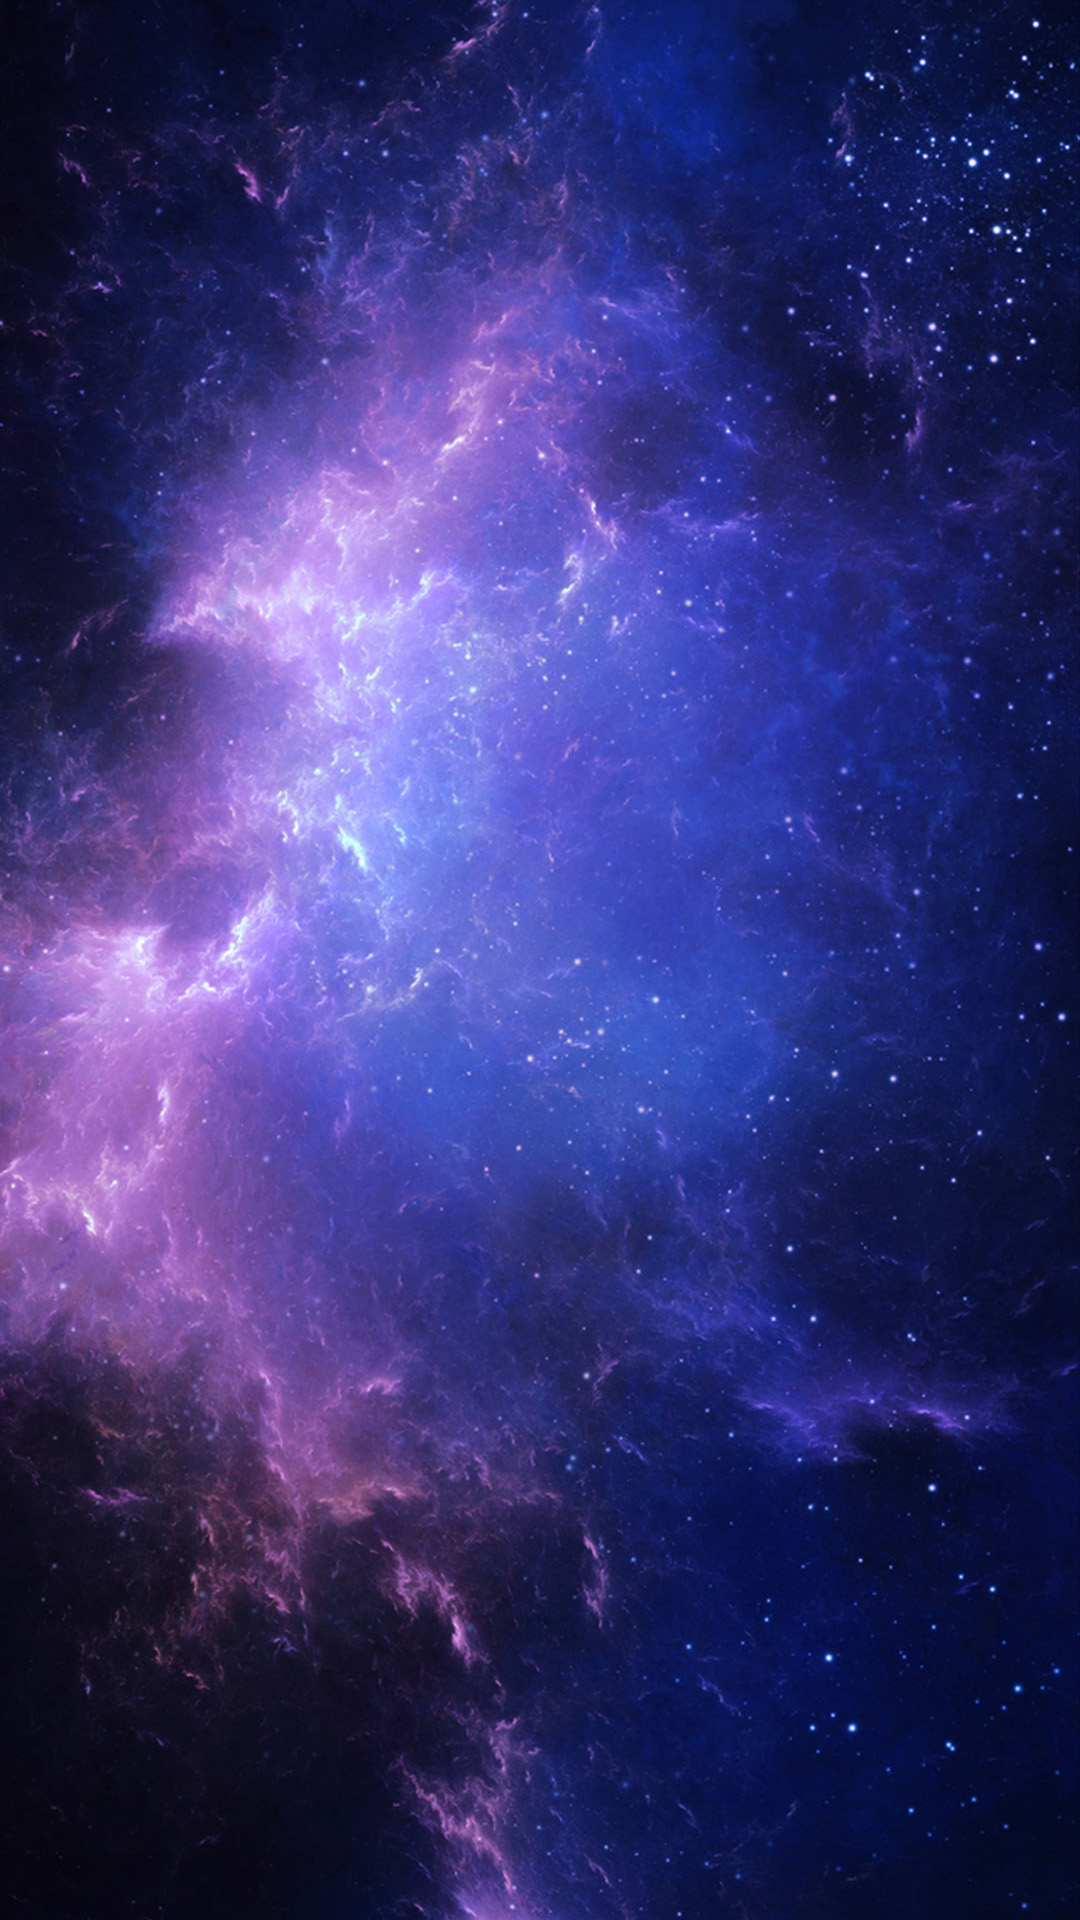 iPhone 6 Plus Space Wallpaper WallpaperSafari